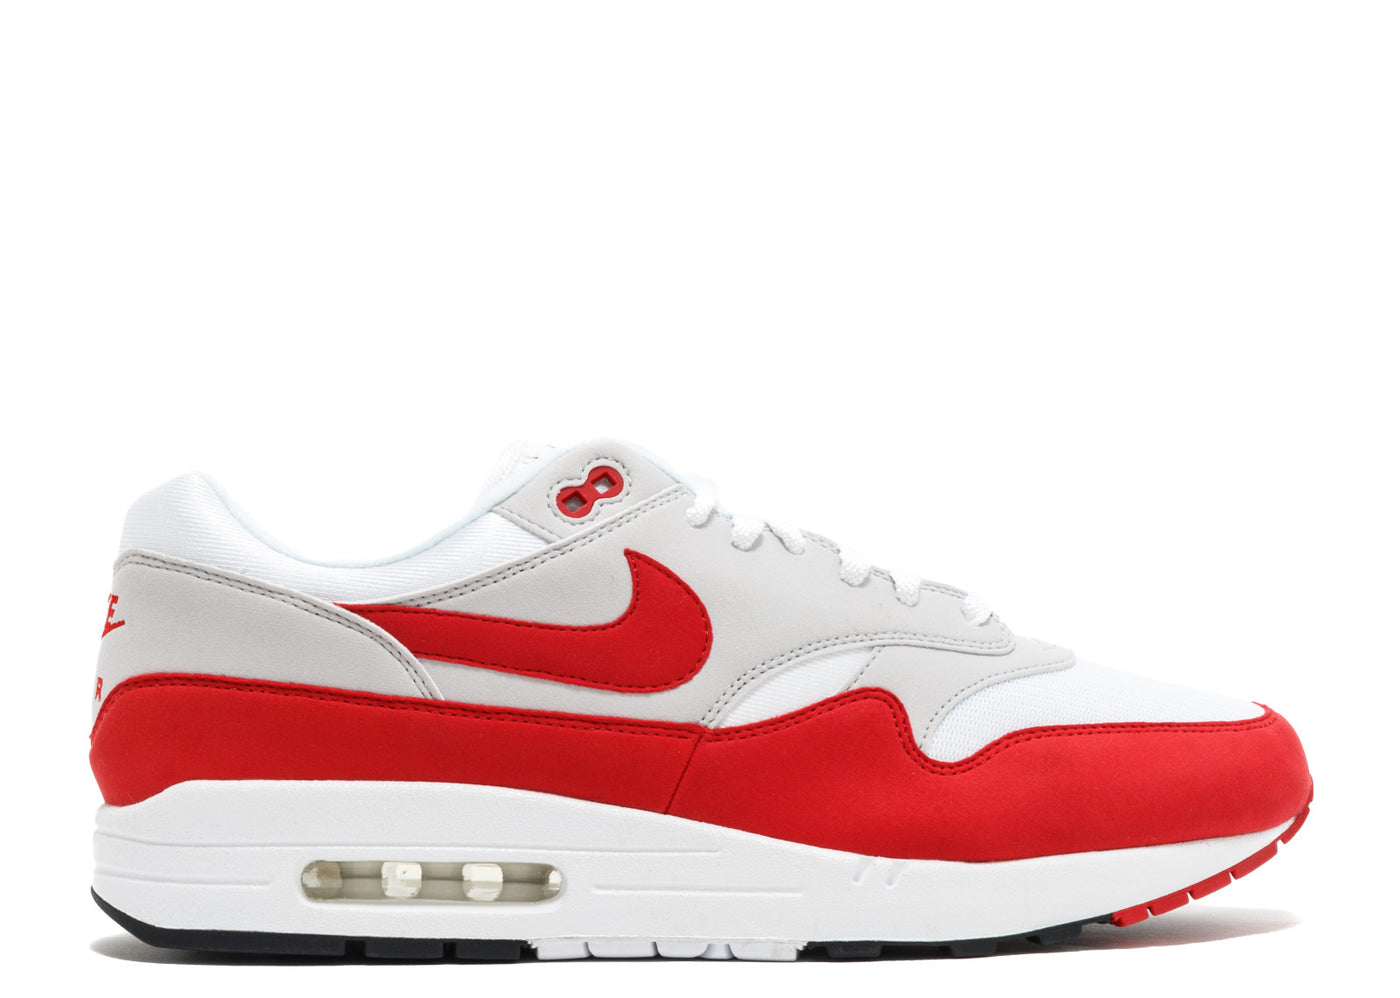 e5eb960664c3 Where to buy Air Max 1 shoe laces  - Slickies